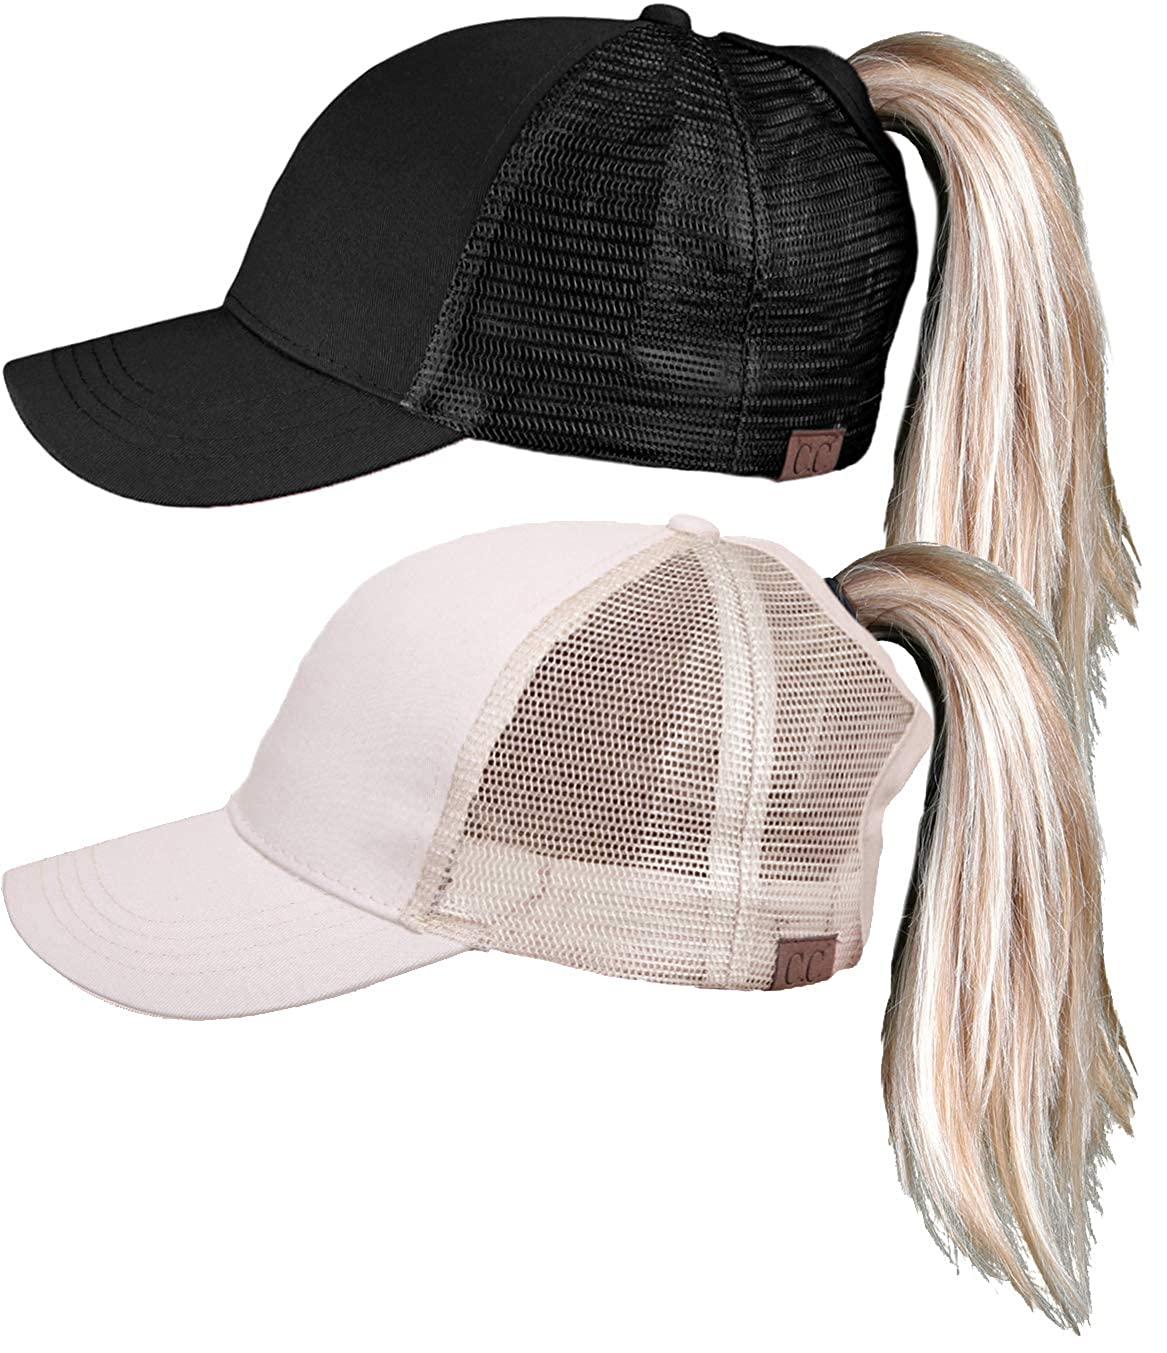 9068ee4a7e674 Funky Junque Womens Baseball Cap Adjustable High Ponytail Messy Bun Mesh  Trucker Hat (2 Pk - Black   Beige) at Amazon Women s Clothing store